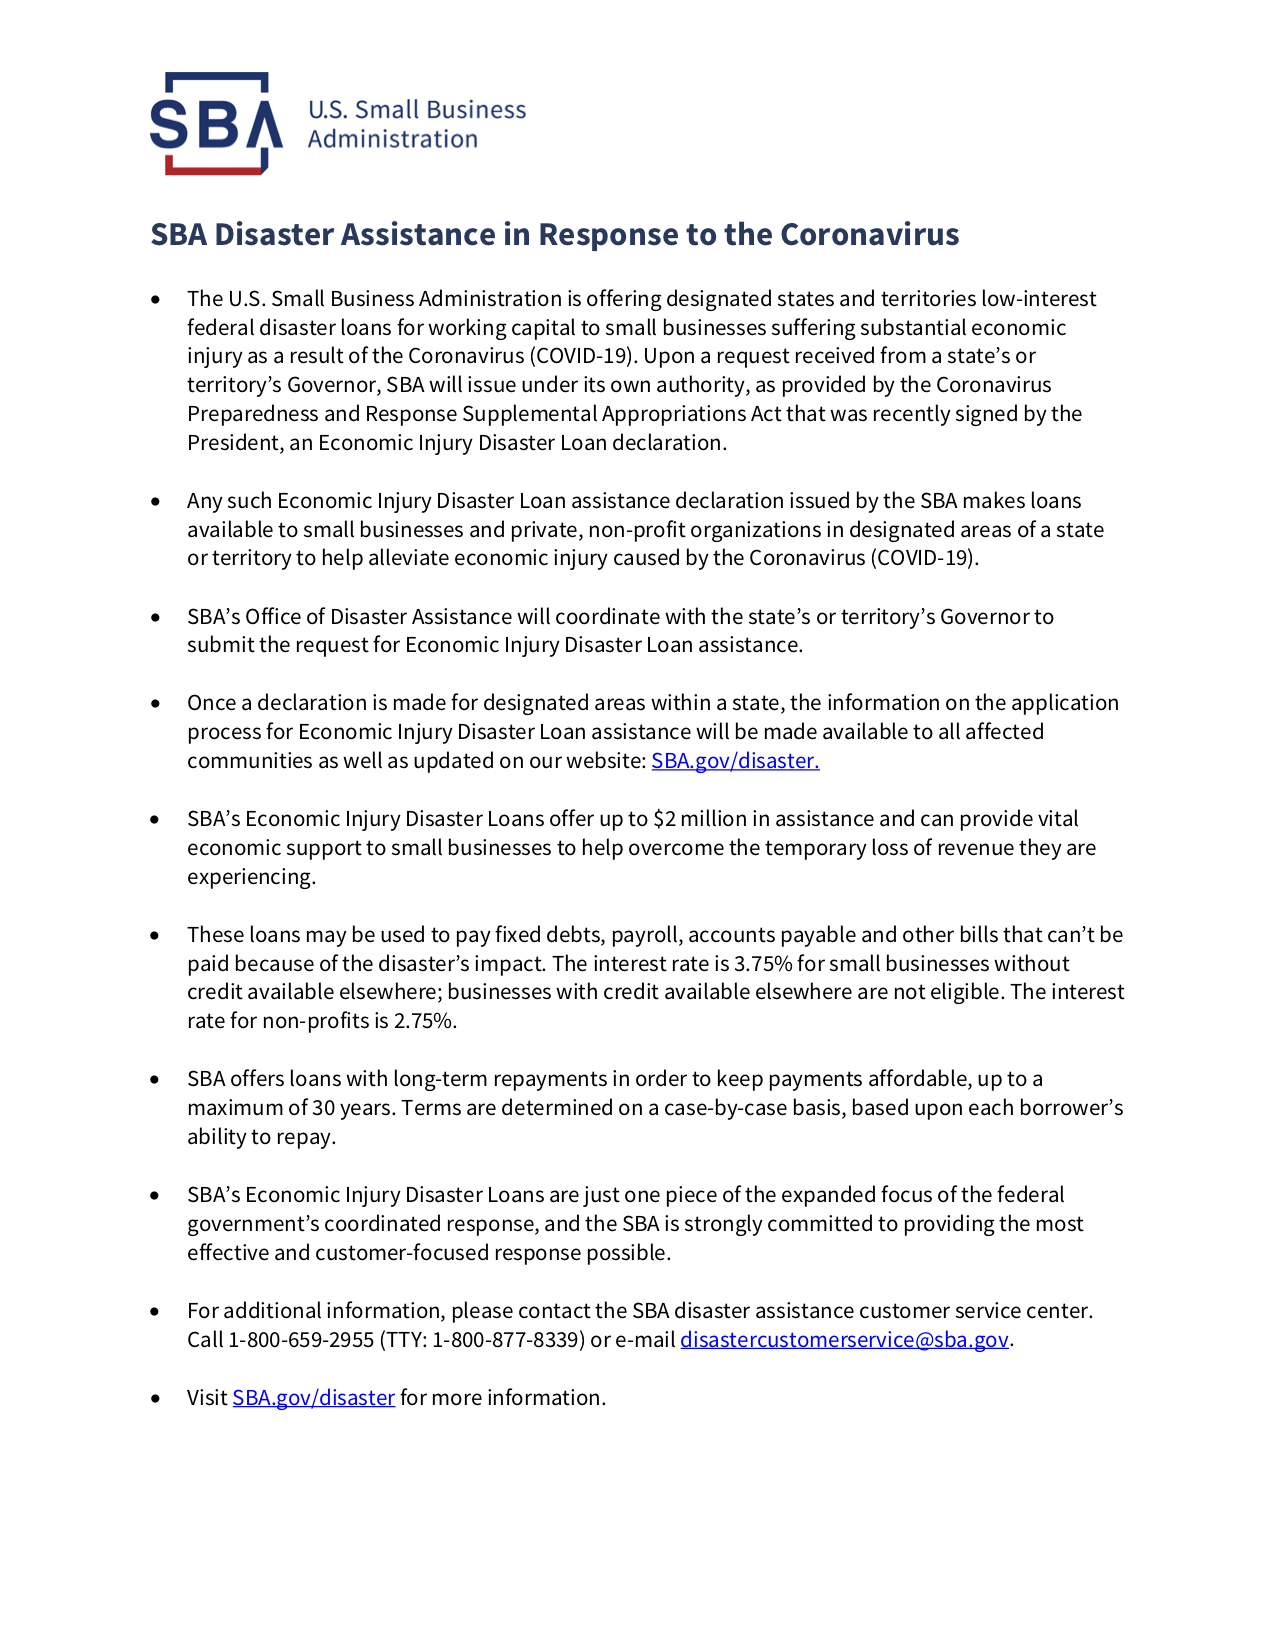 SBA Disaster Assistance Resources for Businesses Handout